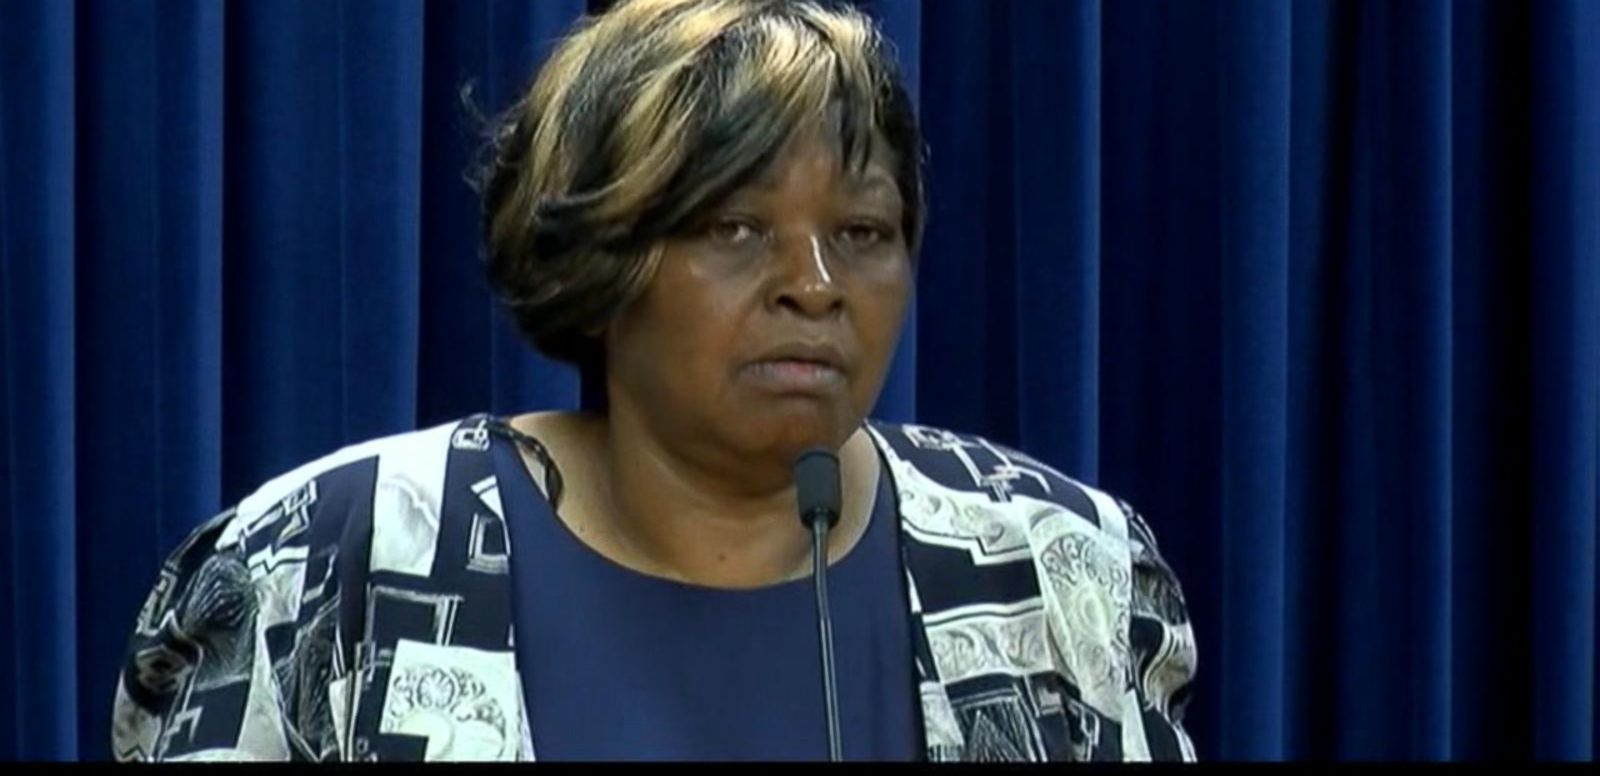 VIDEO: Audrey DuBose expressed her gratitude after a murder indictment was announced against University of Cincinnati police officer Ray Tensing.